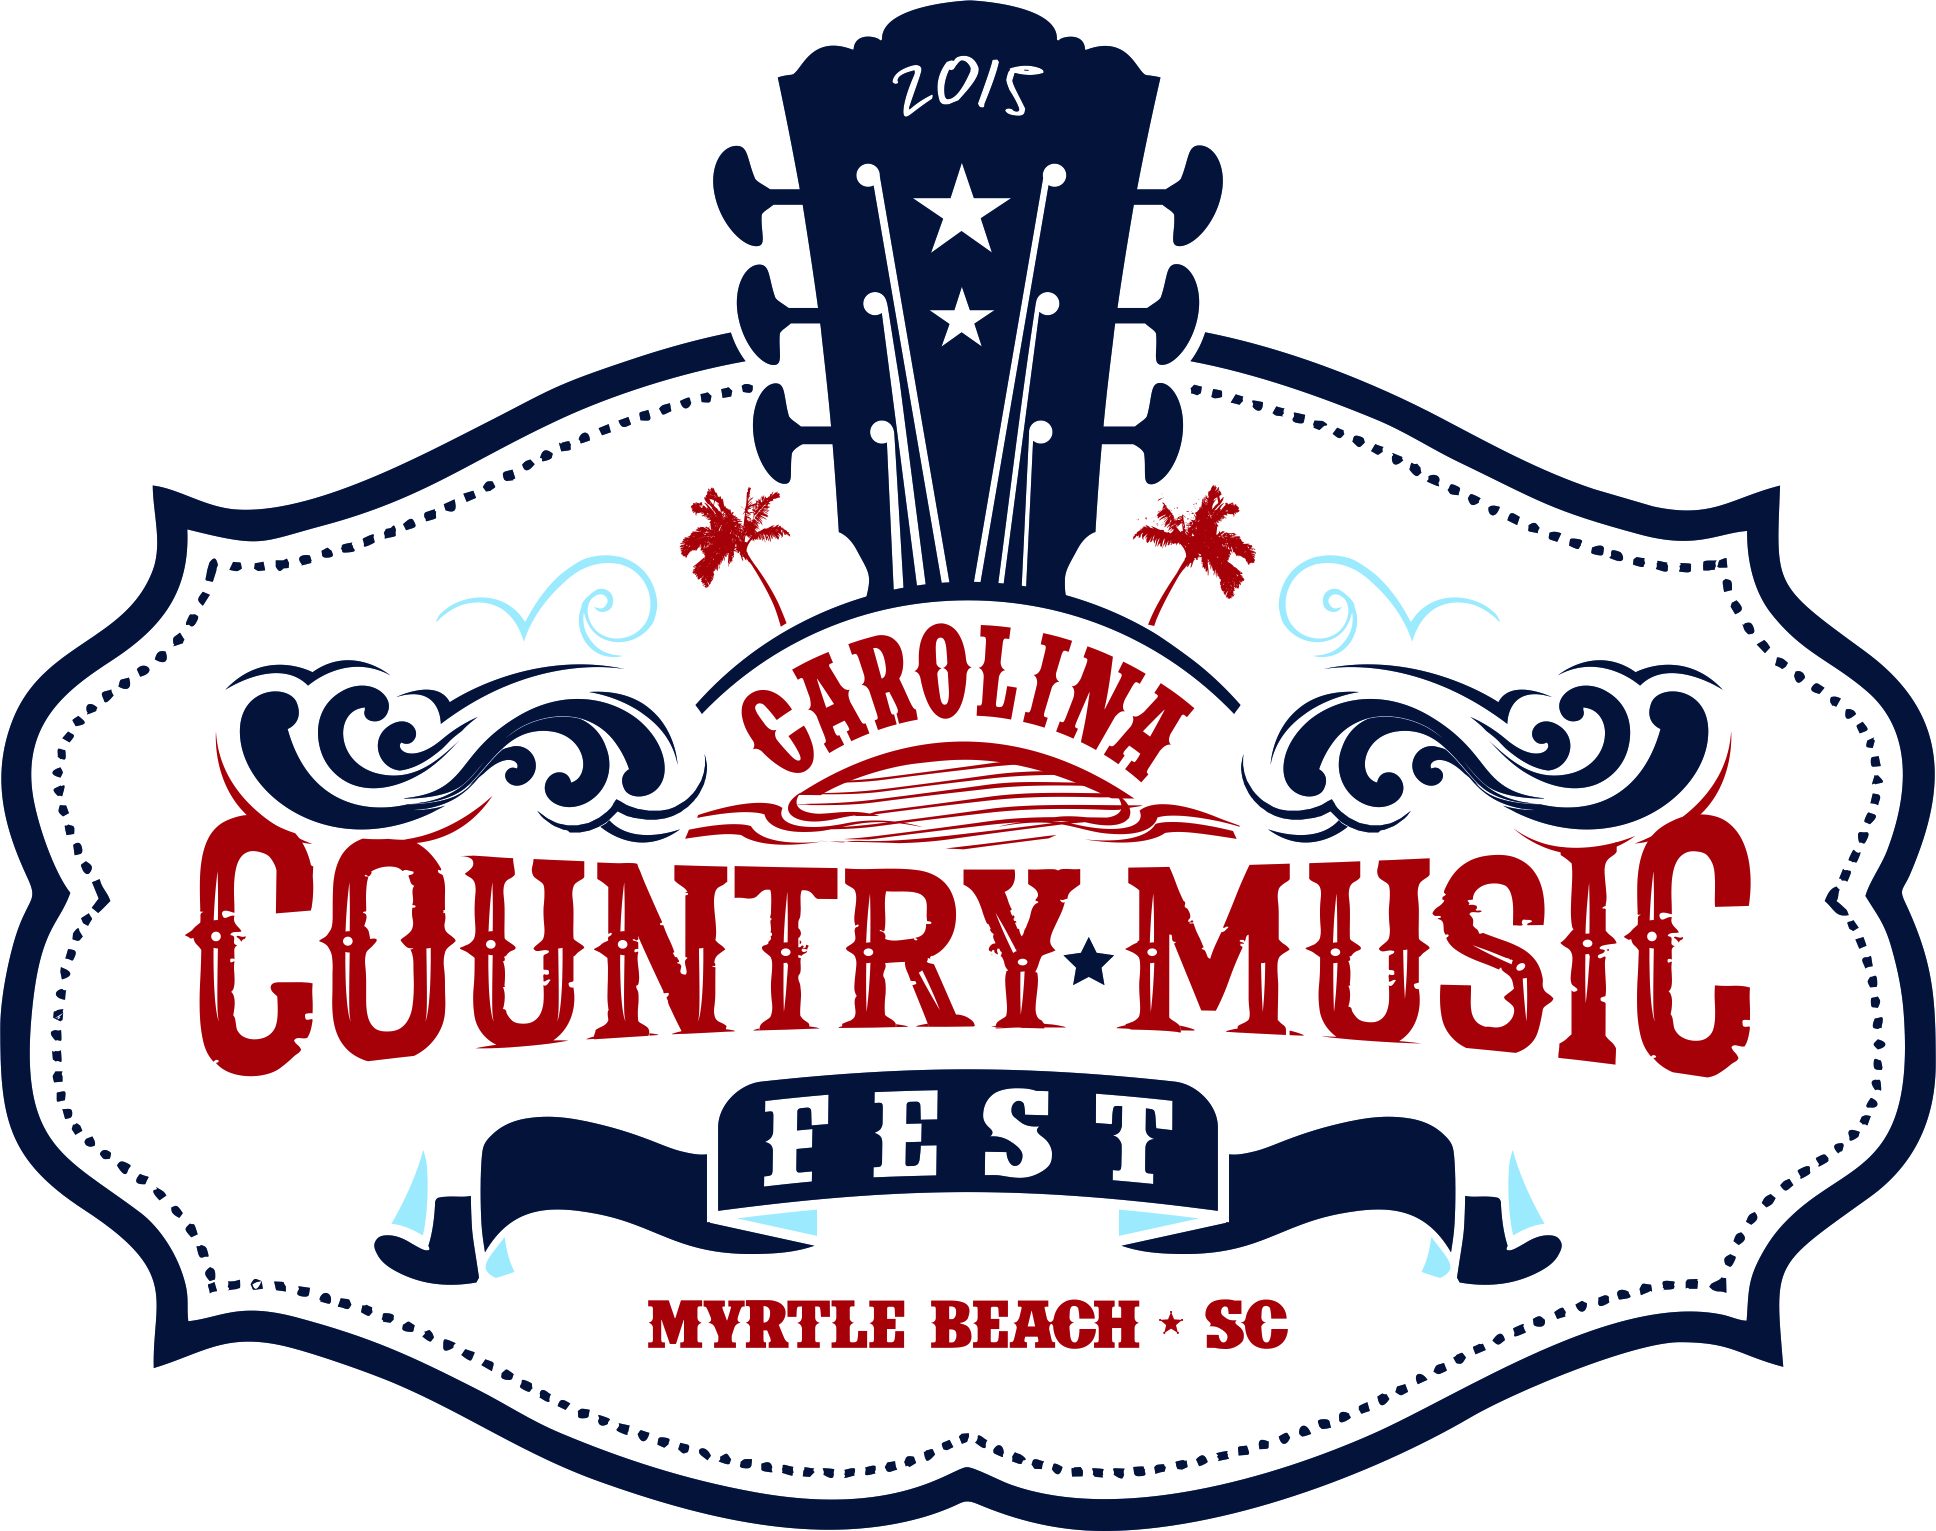 Myrtle Beach Automotive >> Vacation Myrtle Beach Offers Hotel and Ticket Packages for ...